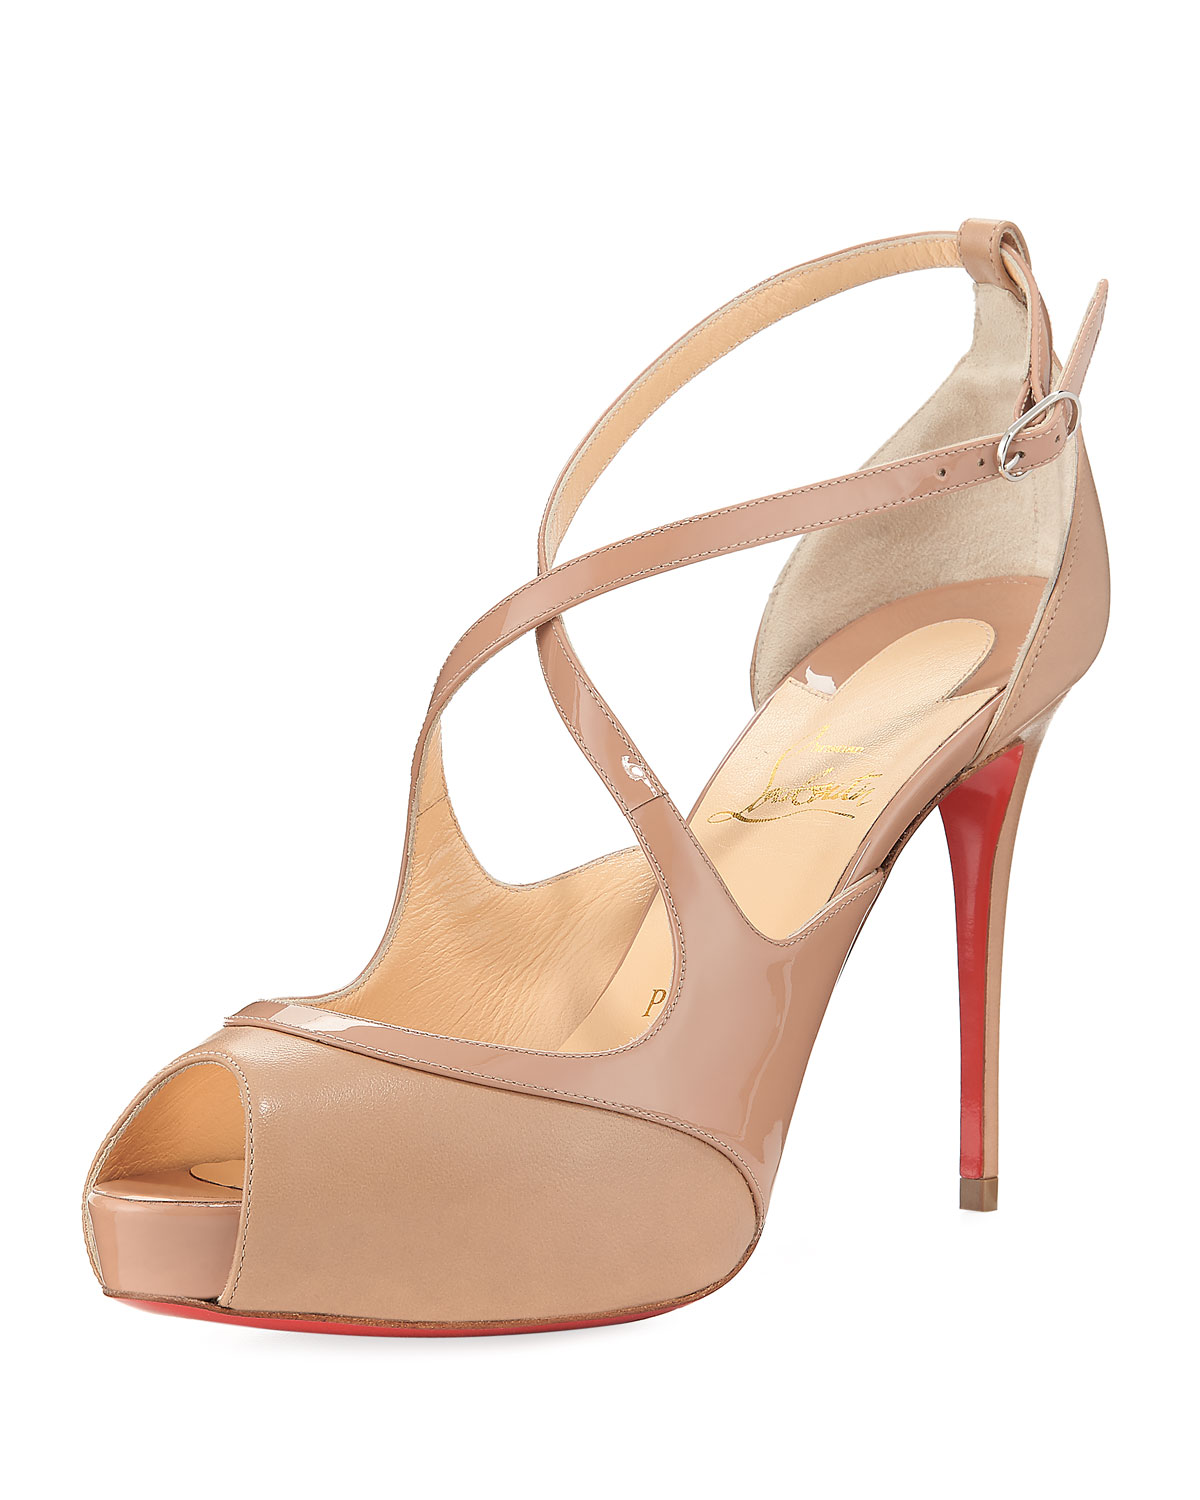 85e4a30df2f Christian Louboutin Mirabella Strappy Patent Red Sole Sandal ...